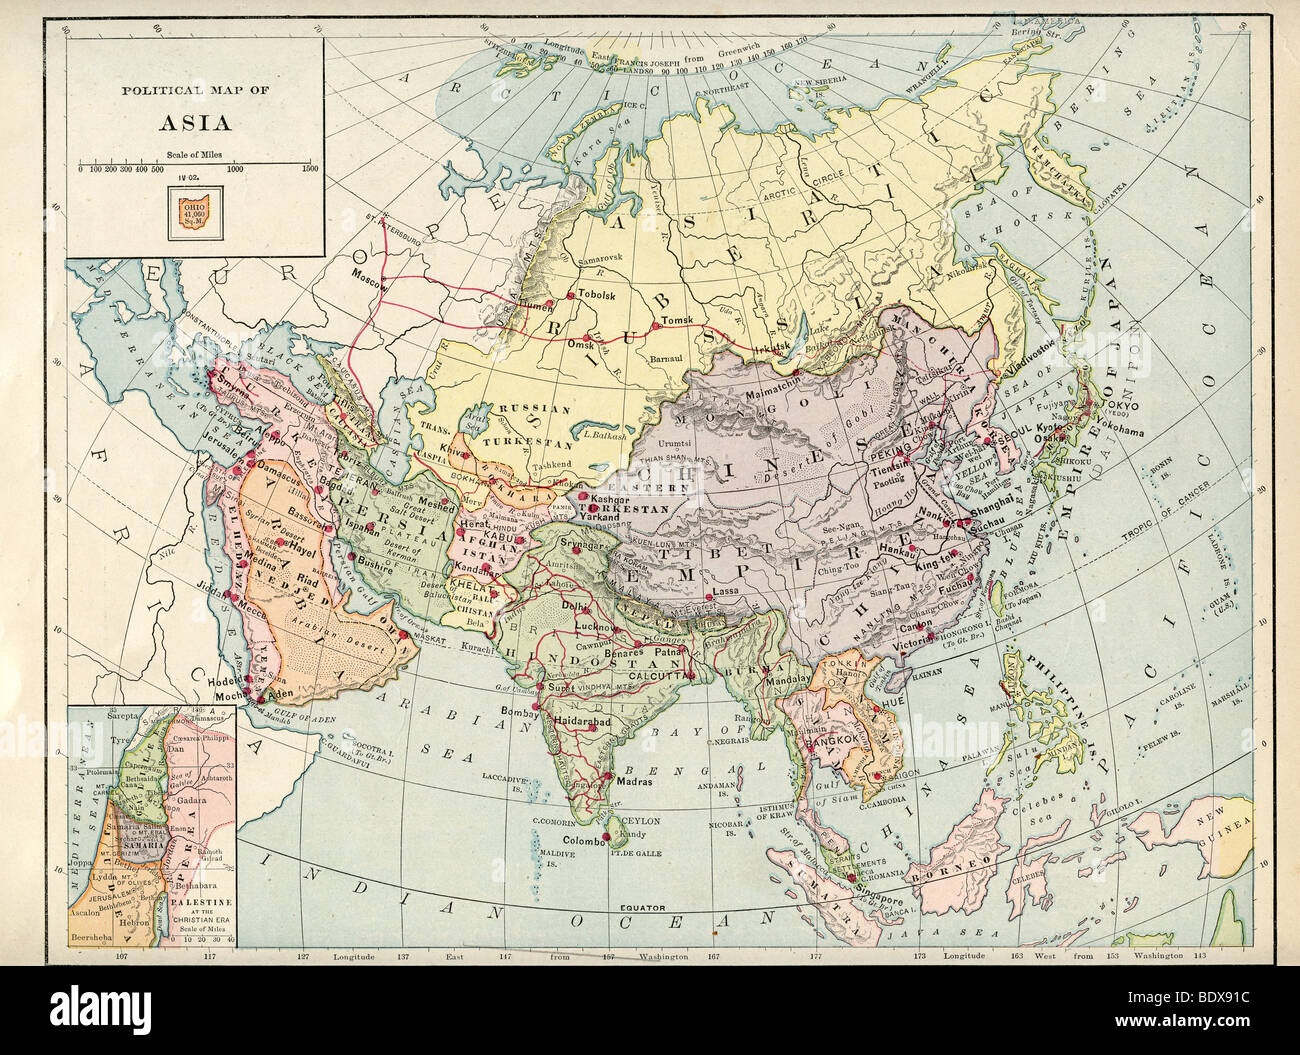 Original old map of asia from 1875 geography textbook stock photo original old map of asia from 1875 geography textbook publicscrutiny Gallery